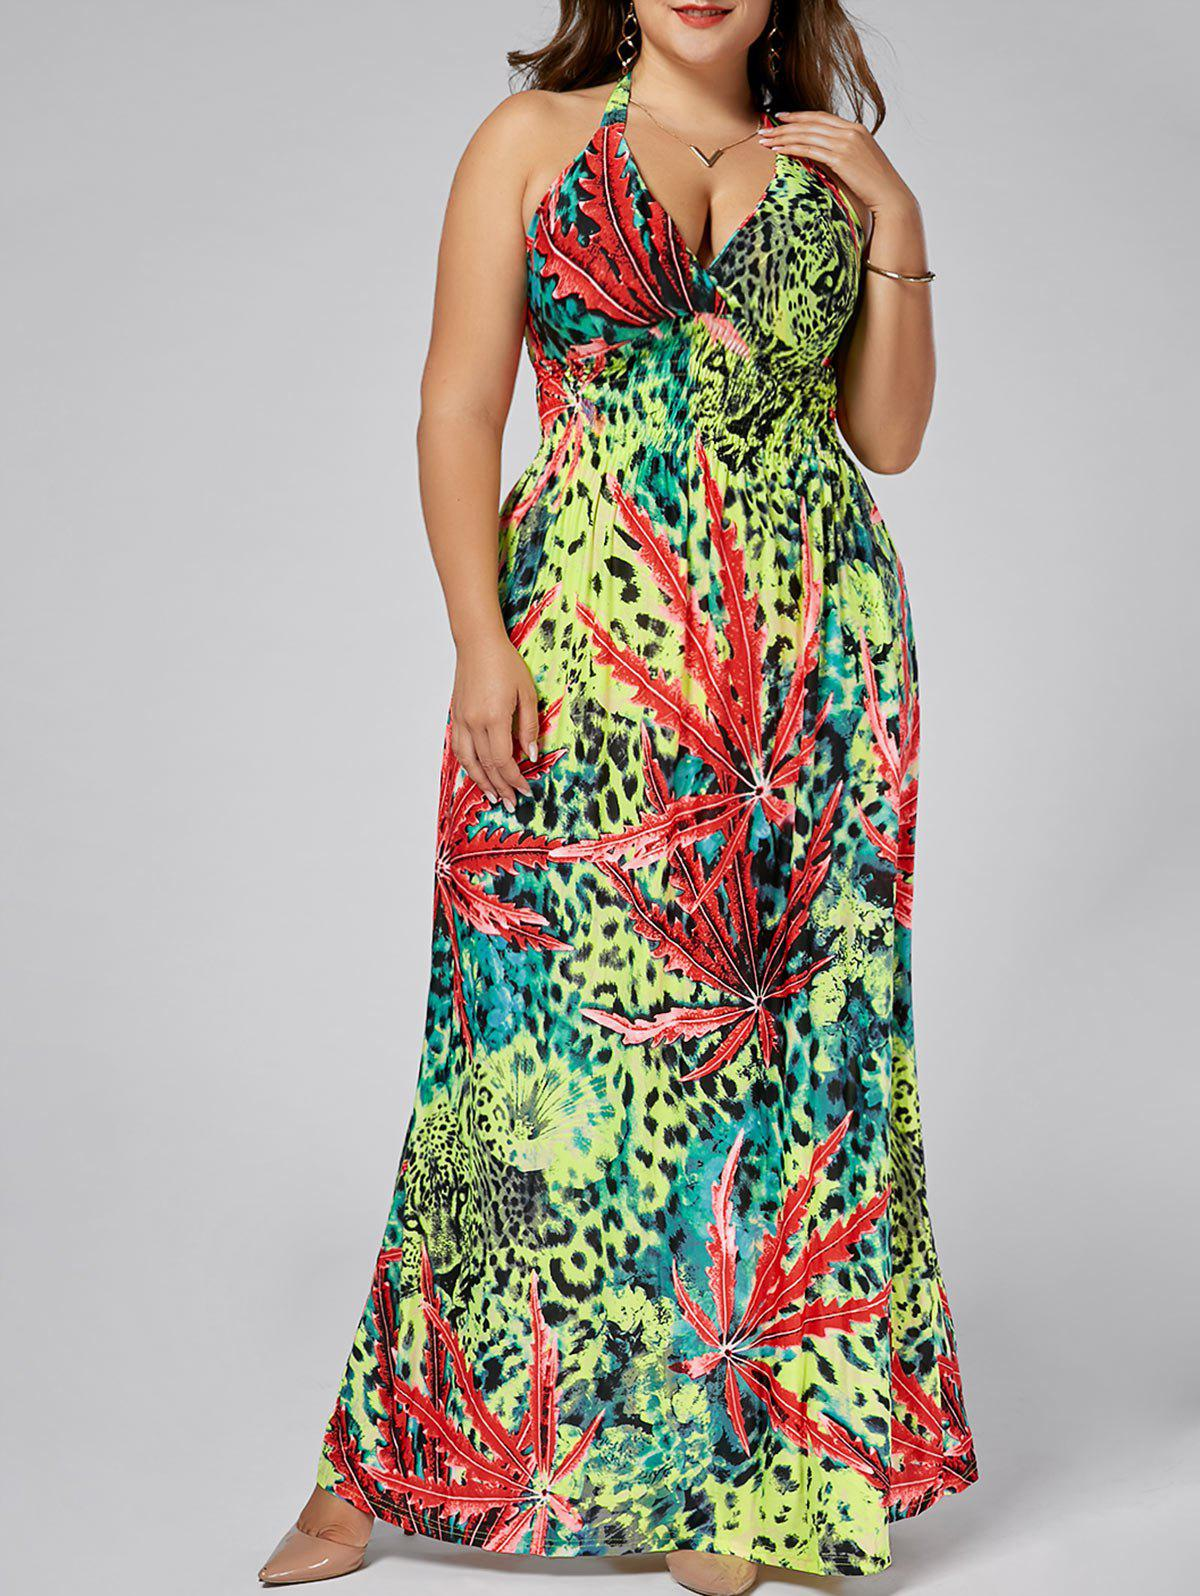 Leopard Plus  Size  Plunging Neck Maxi Halter DressWOMEN<br><br>Size: 3XL; Color: FLORAL; Style: Bohemian; Material: Cotton Blend,Polyester; Silhouette: Beach; Dresses Length: Ankle-Length; Neckline: Halter; Sleeve Length: Sleeveless; Waist: Empire; Embellishment: Backless; Pattern Type: Leopard,Plant,Print; With Belt: No; Season: Spring,Summer; Weight: 0.4800kg; Package Contents: 1 x Dress;